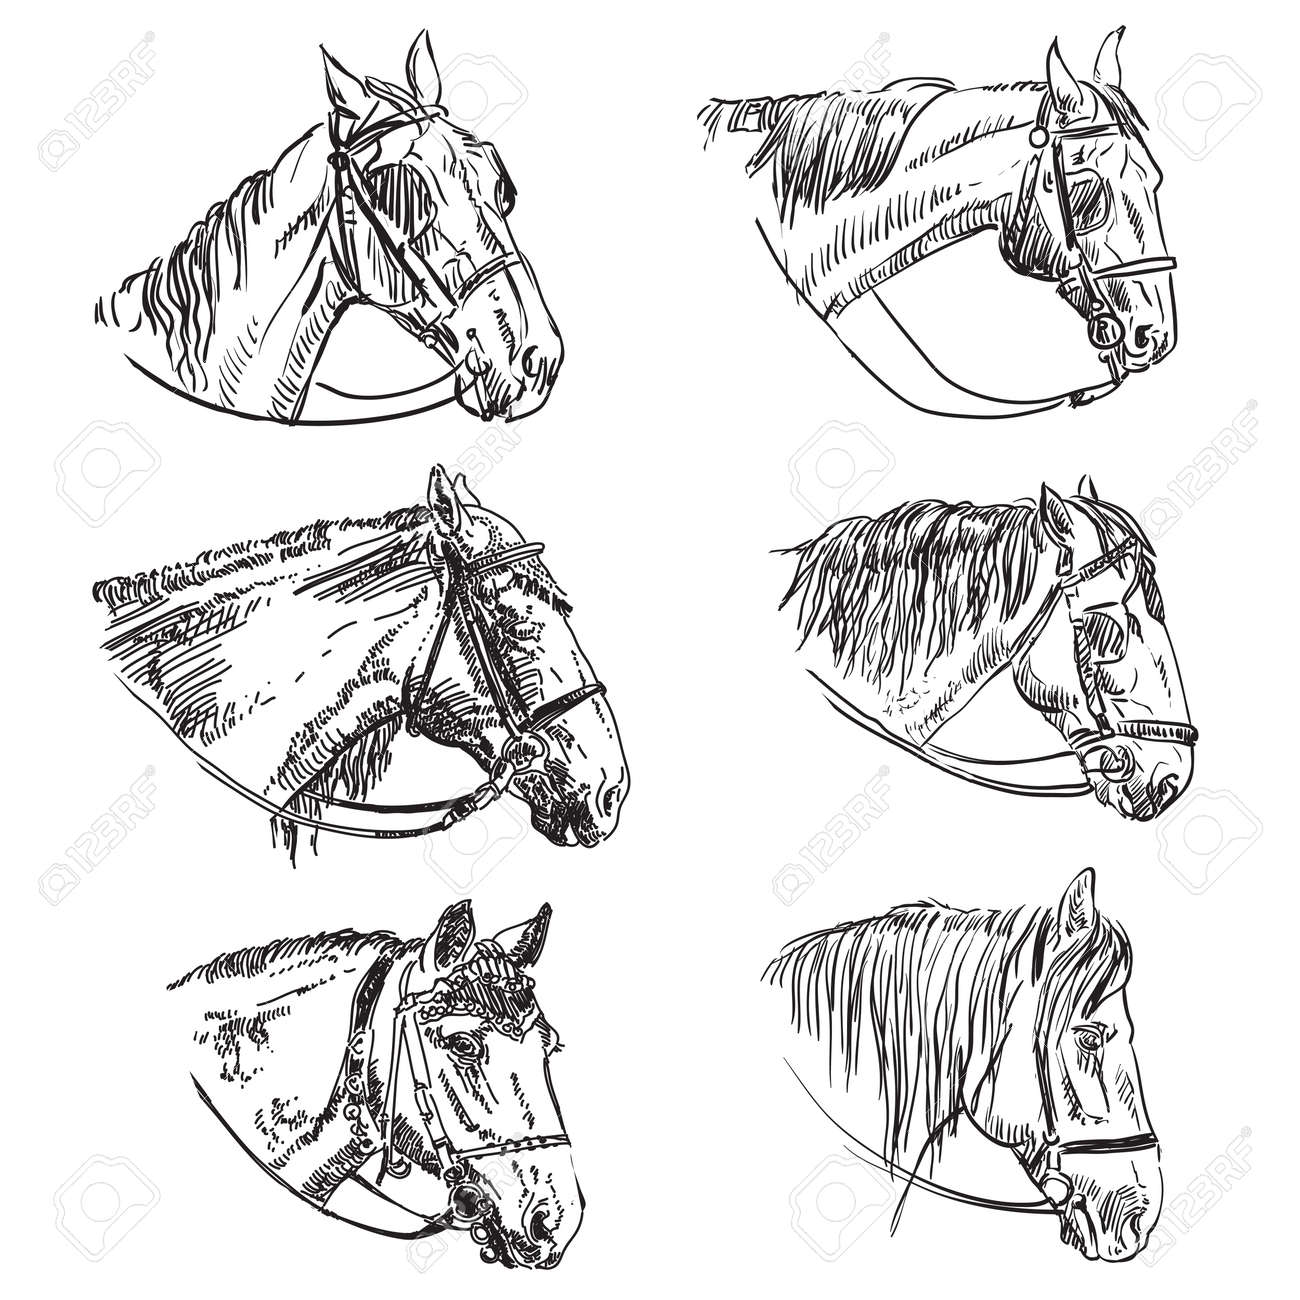 Hand Drawing Set Of 6 Horses Heads In Bridle Elegance Horses Royalty Free Cliparts Vectors And Stock Illustration Image 146968147